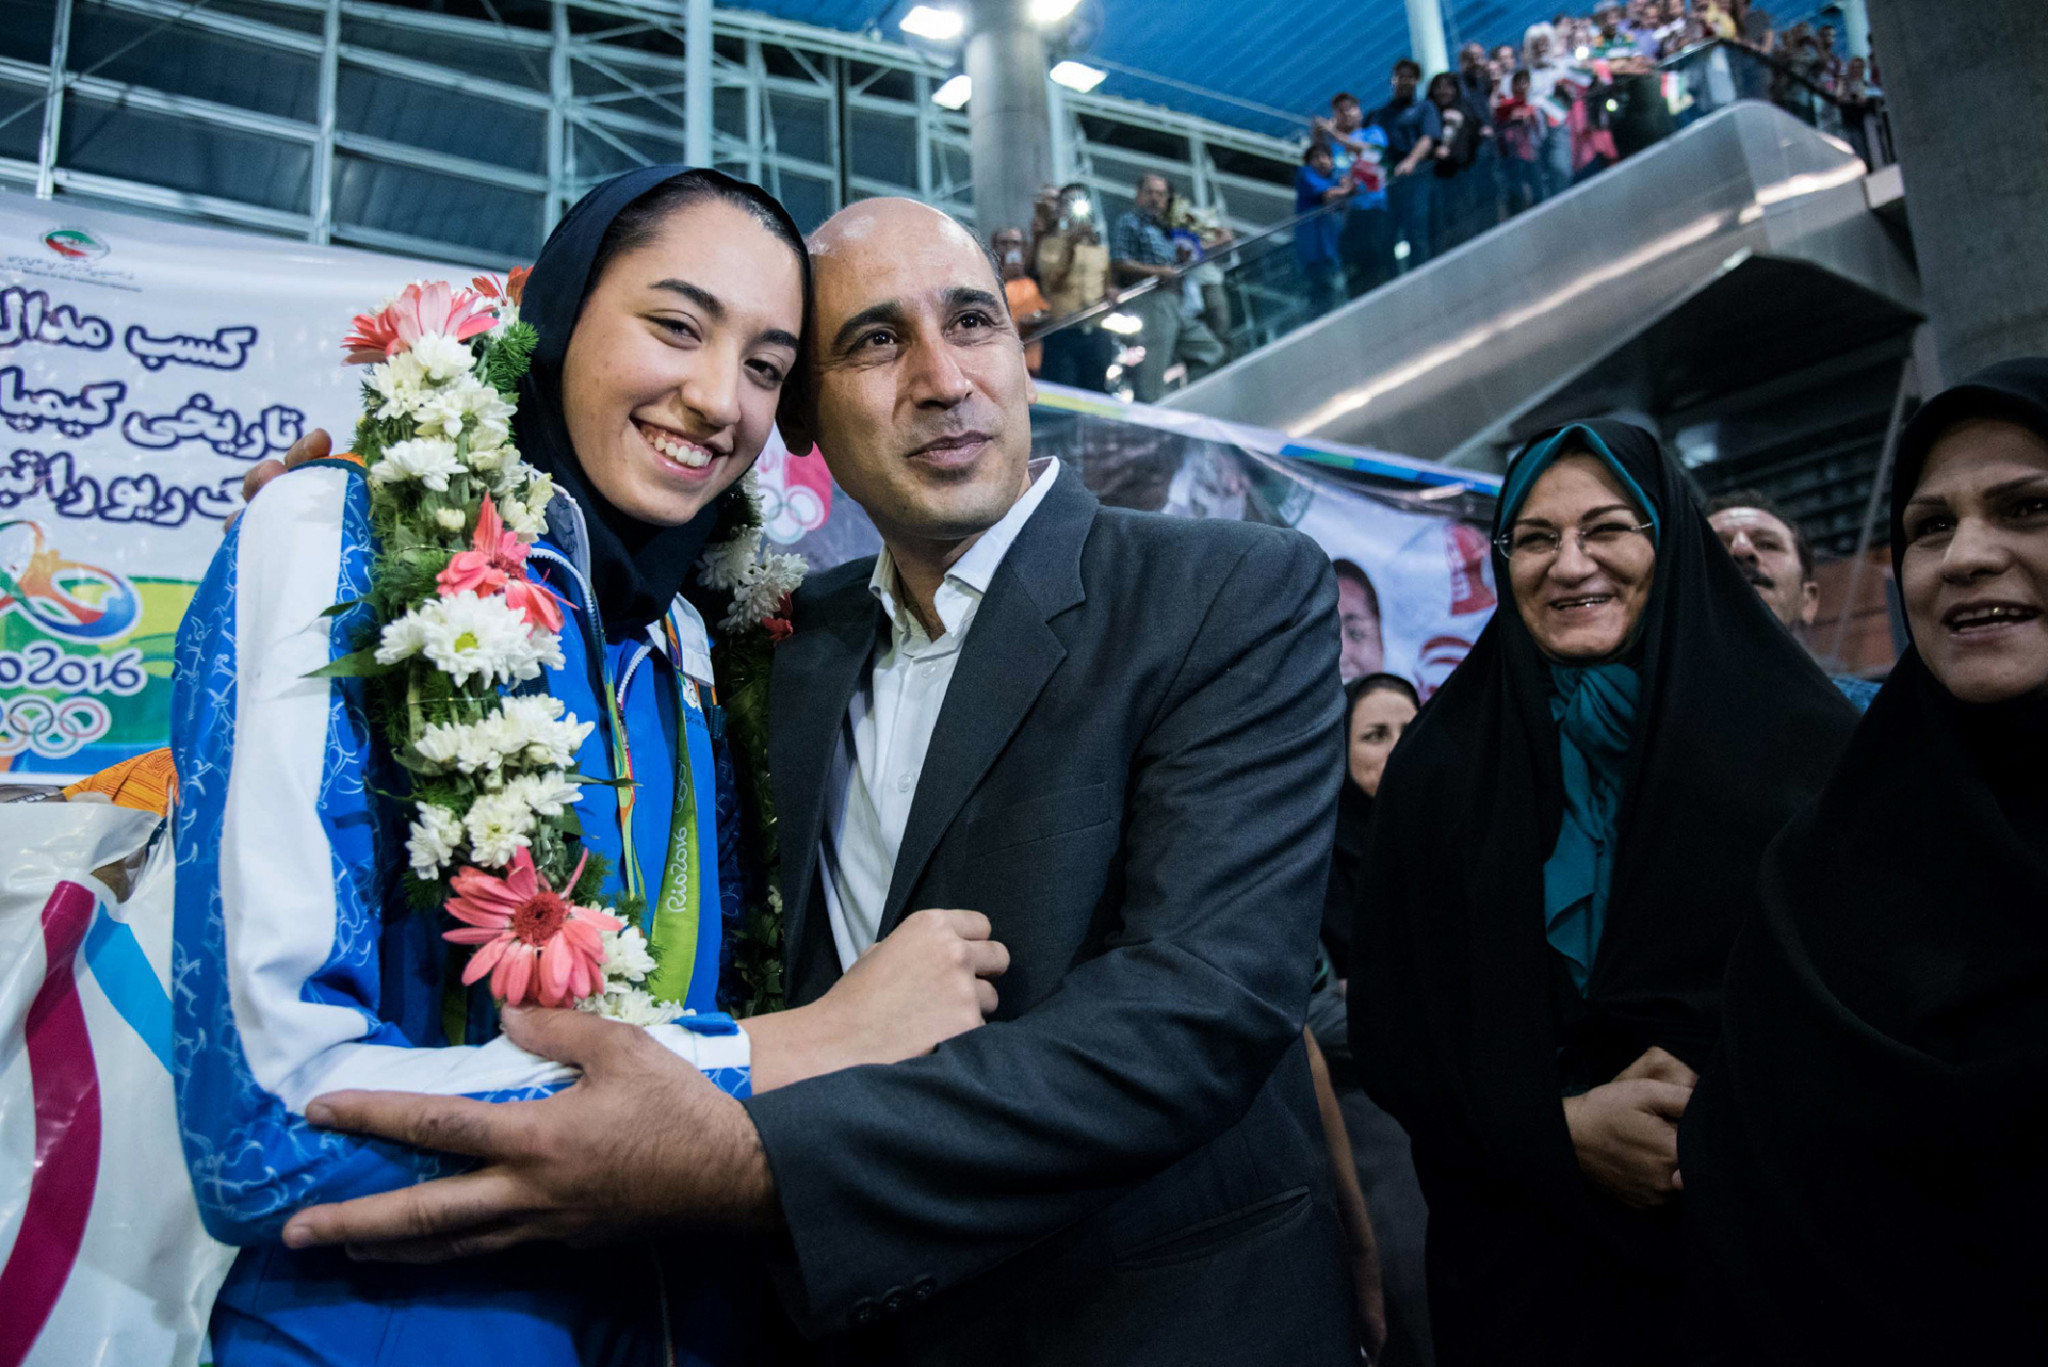 Kimia Alizadeh was just 18 years old when she won an Olympic bronze medal at Rio 2016 ©Getty Images